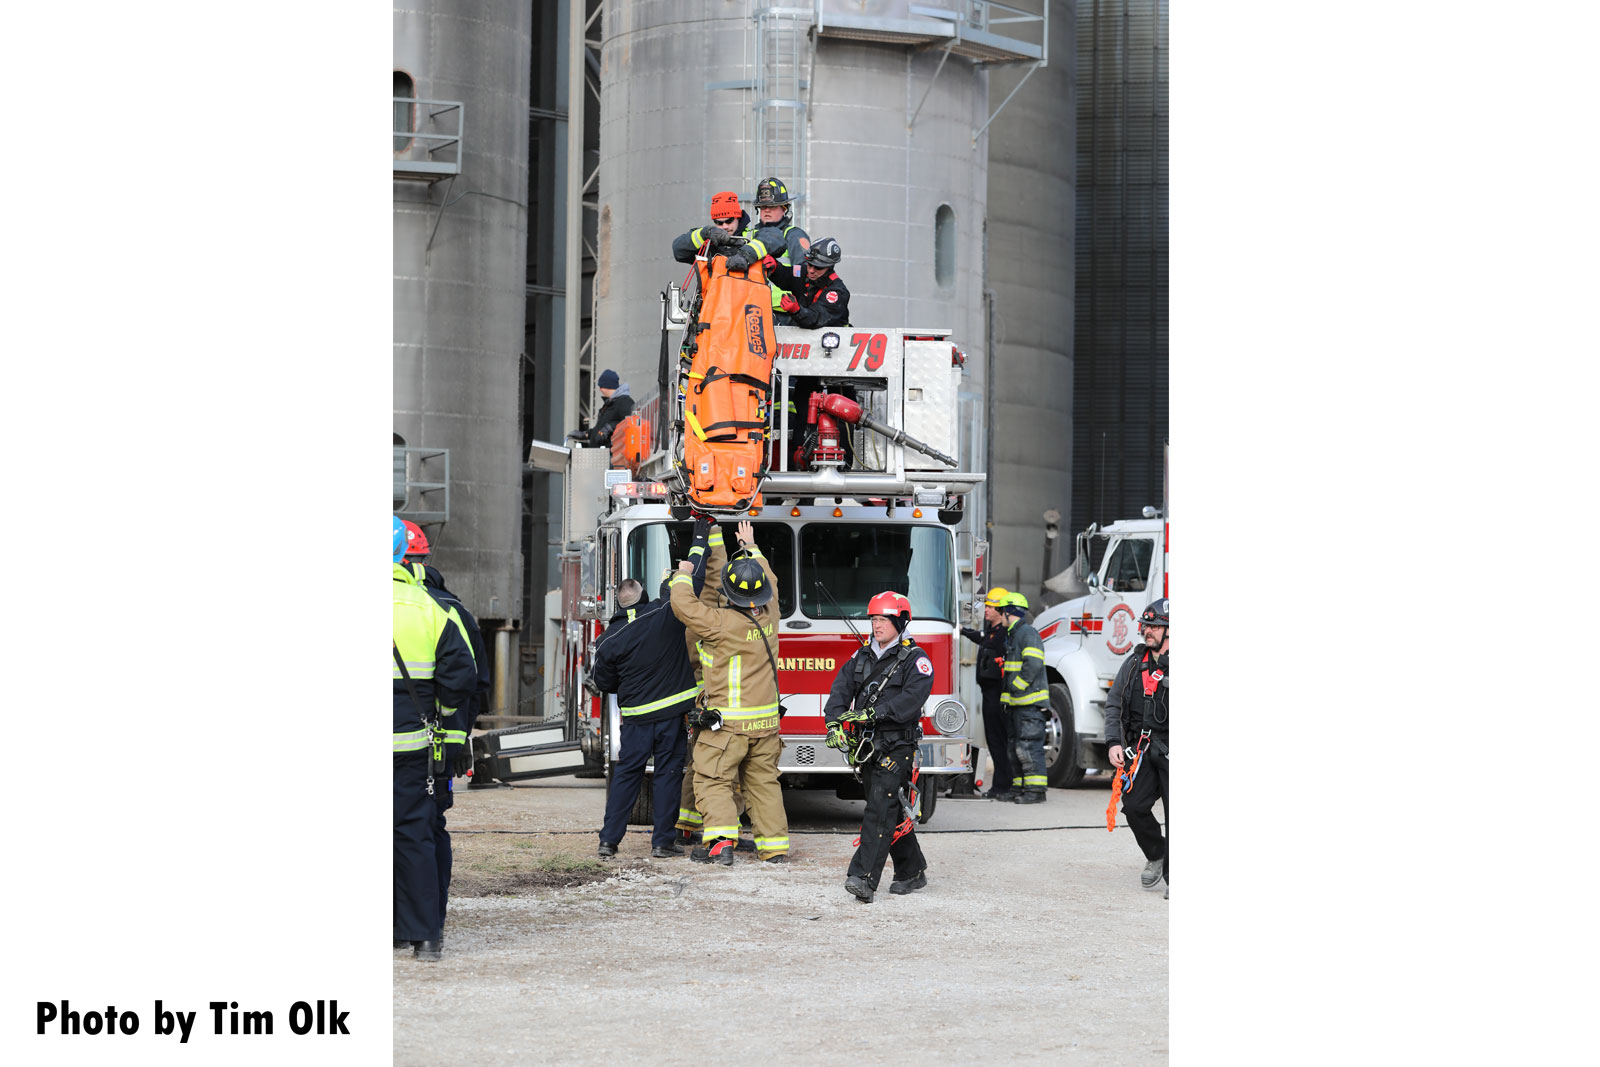 Firefighters respond to the scene of a rescue and recovery operation at a grain bin near Manteno, Illinois.